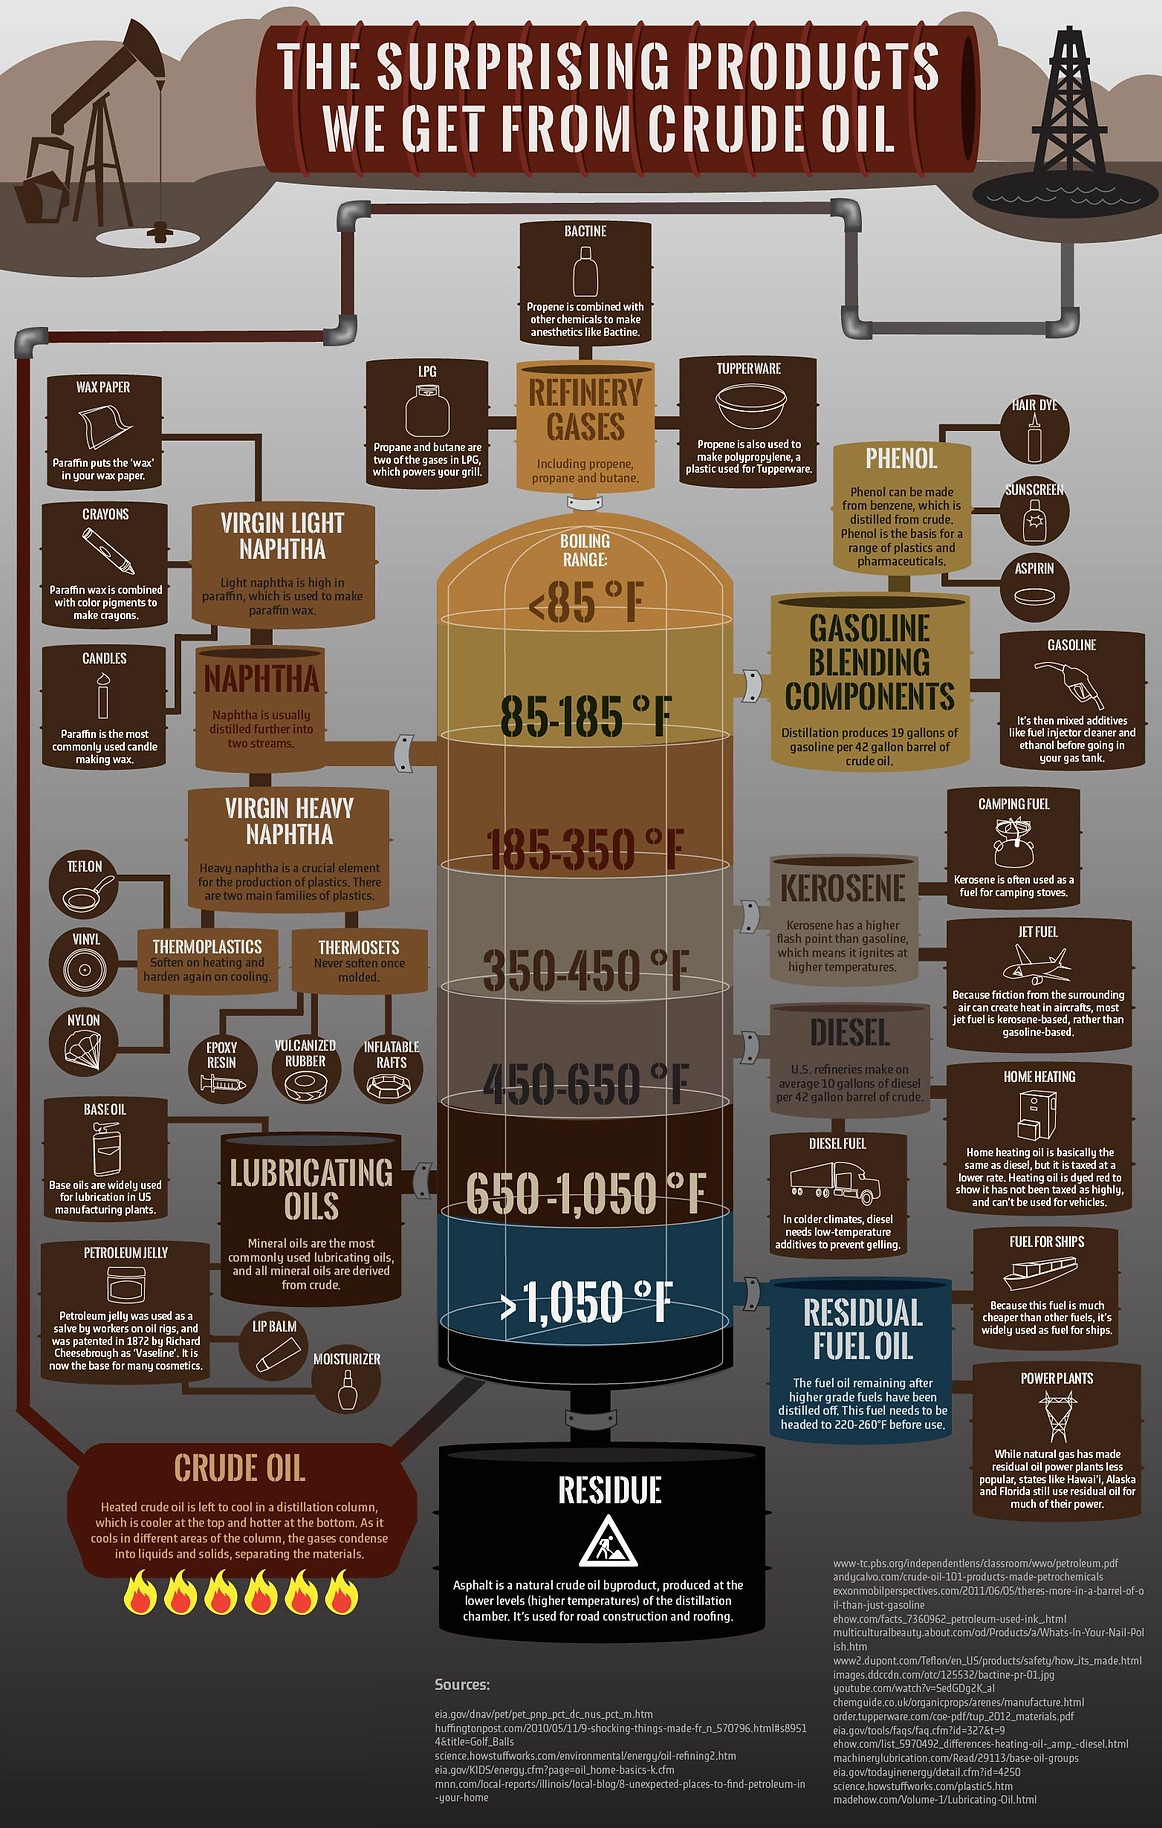 Crude-Oil-Products-Infographic.jpg